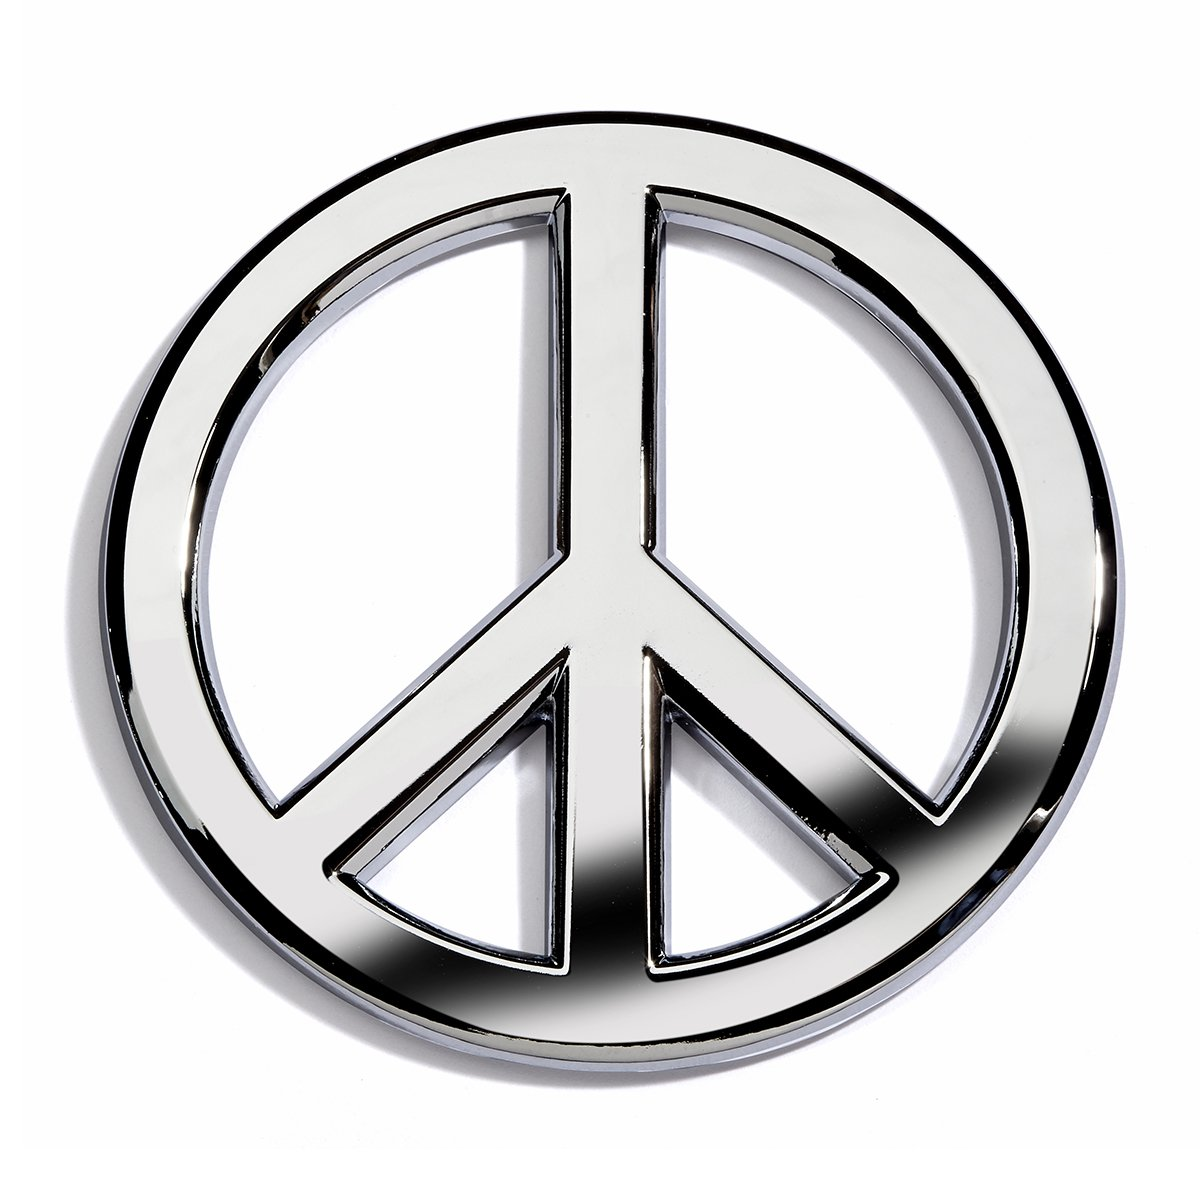 Amazon chrome peace sign car emblem by revolution car badges amazon chrome peace sign car emblem by revolution car badges automotive biocorpaavc